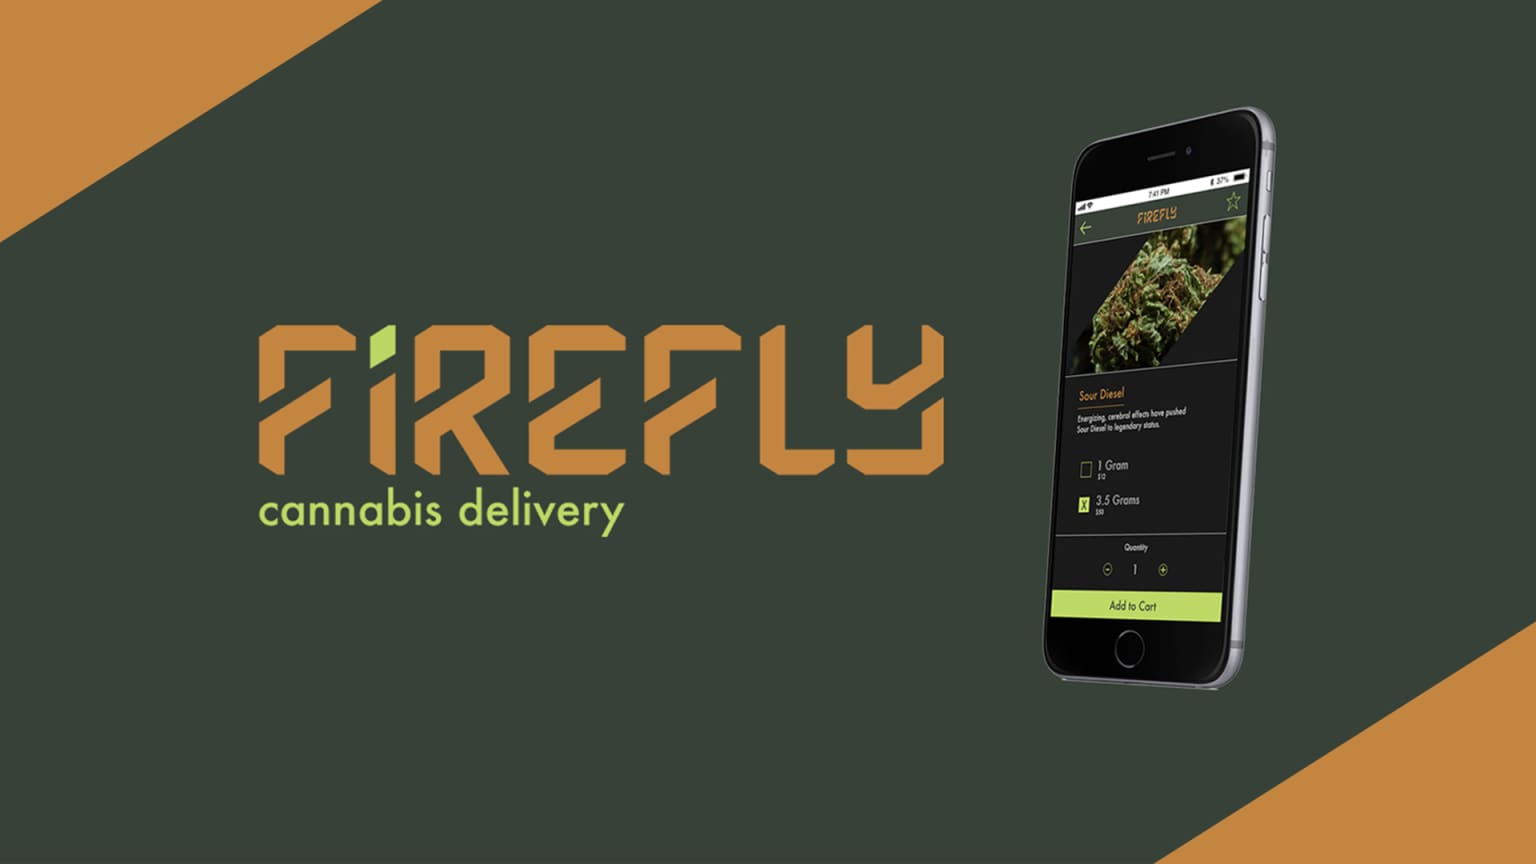 Firefly Cannabis Delivery